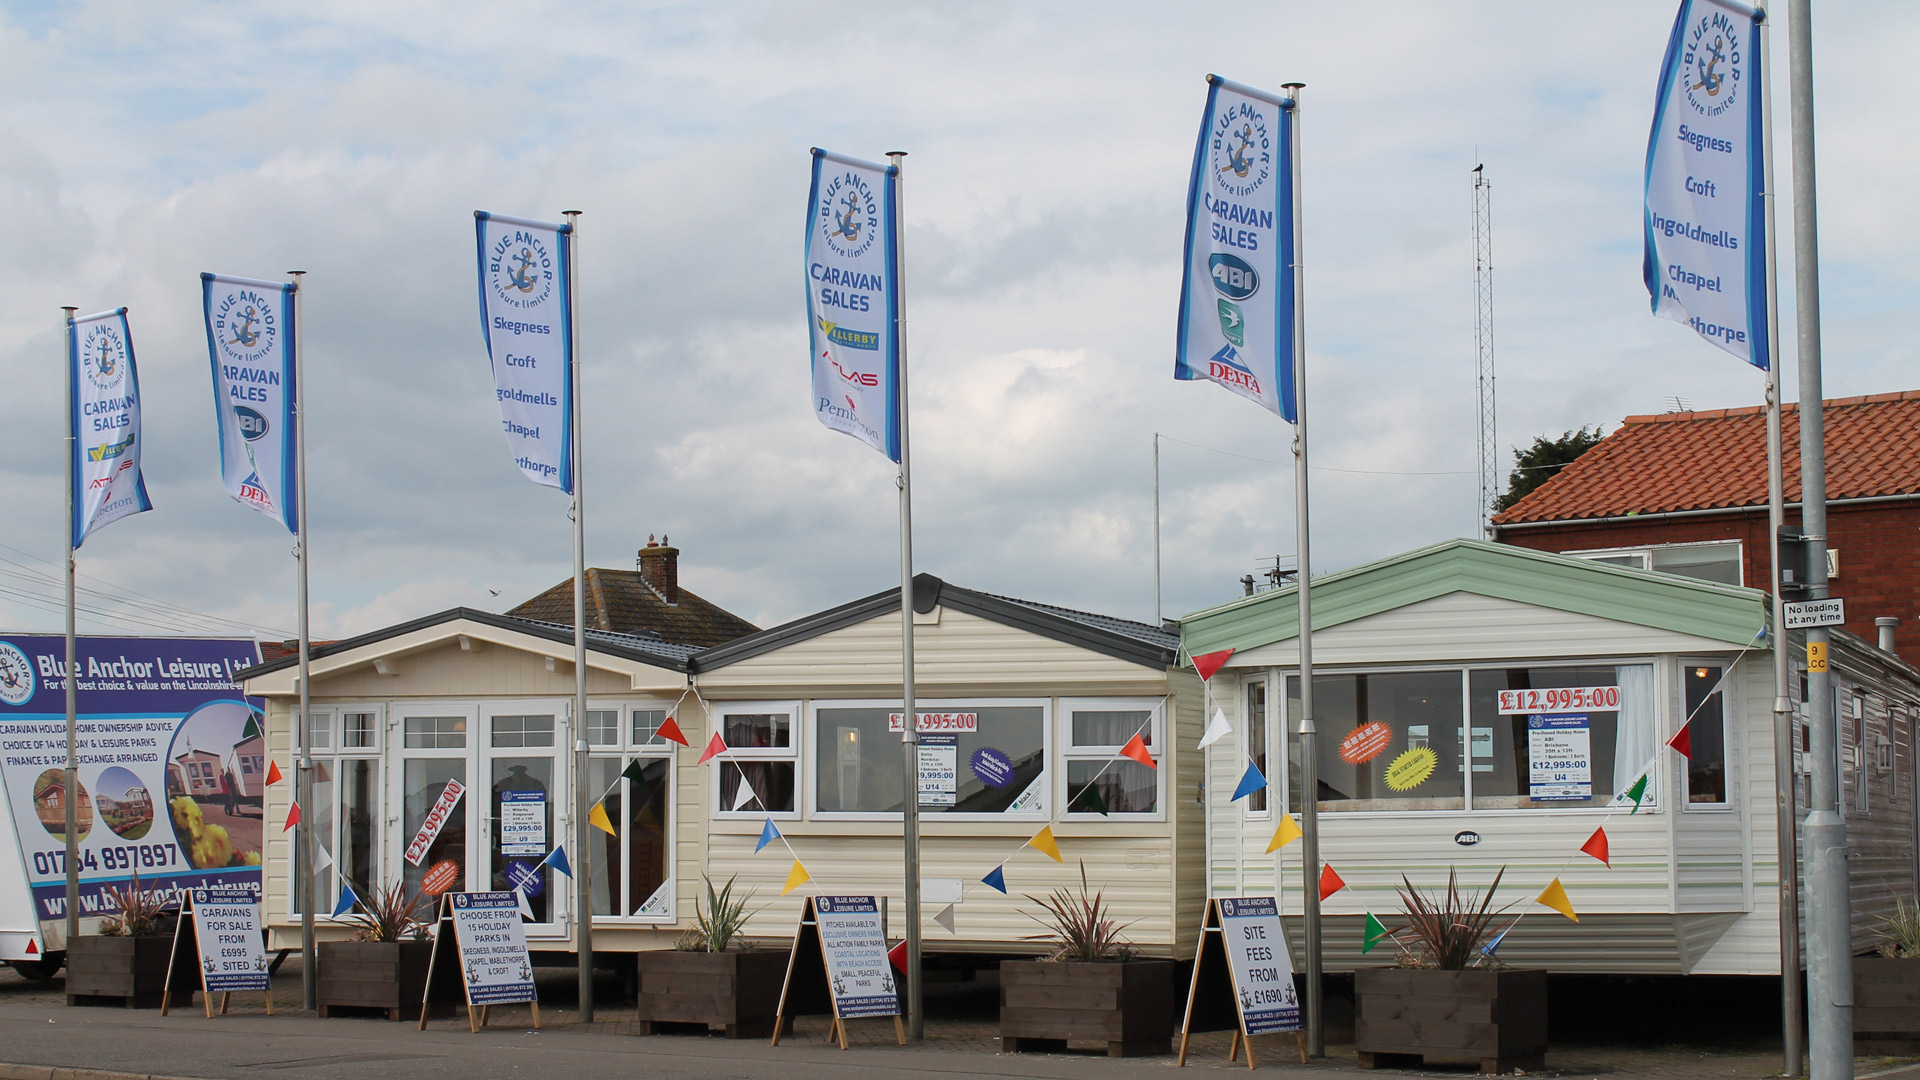 Sea Lane Caravan Sales - Caravans For Sale Skegness